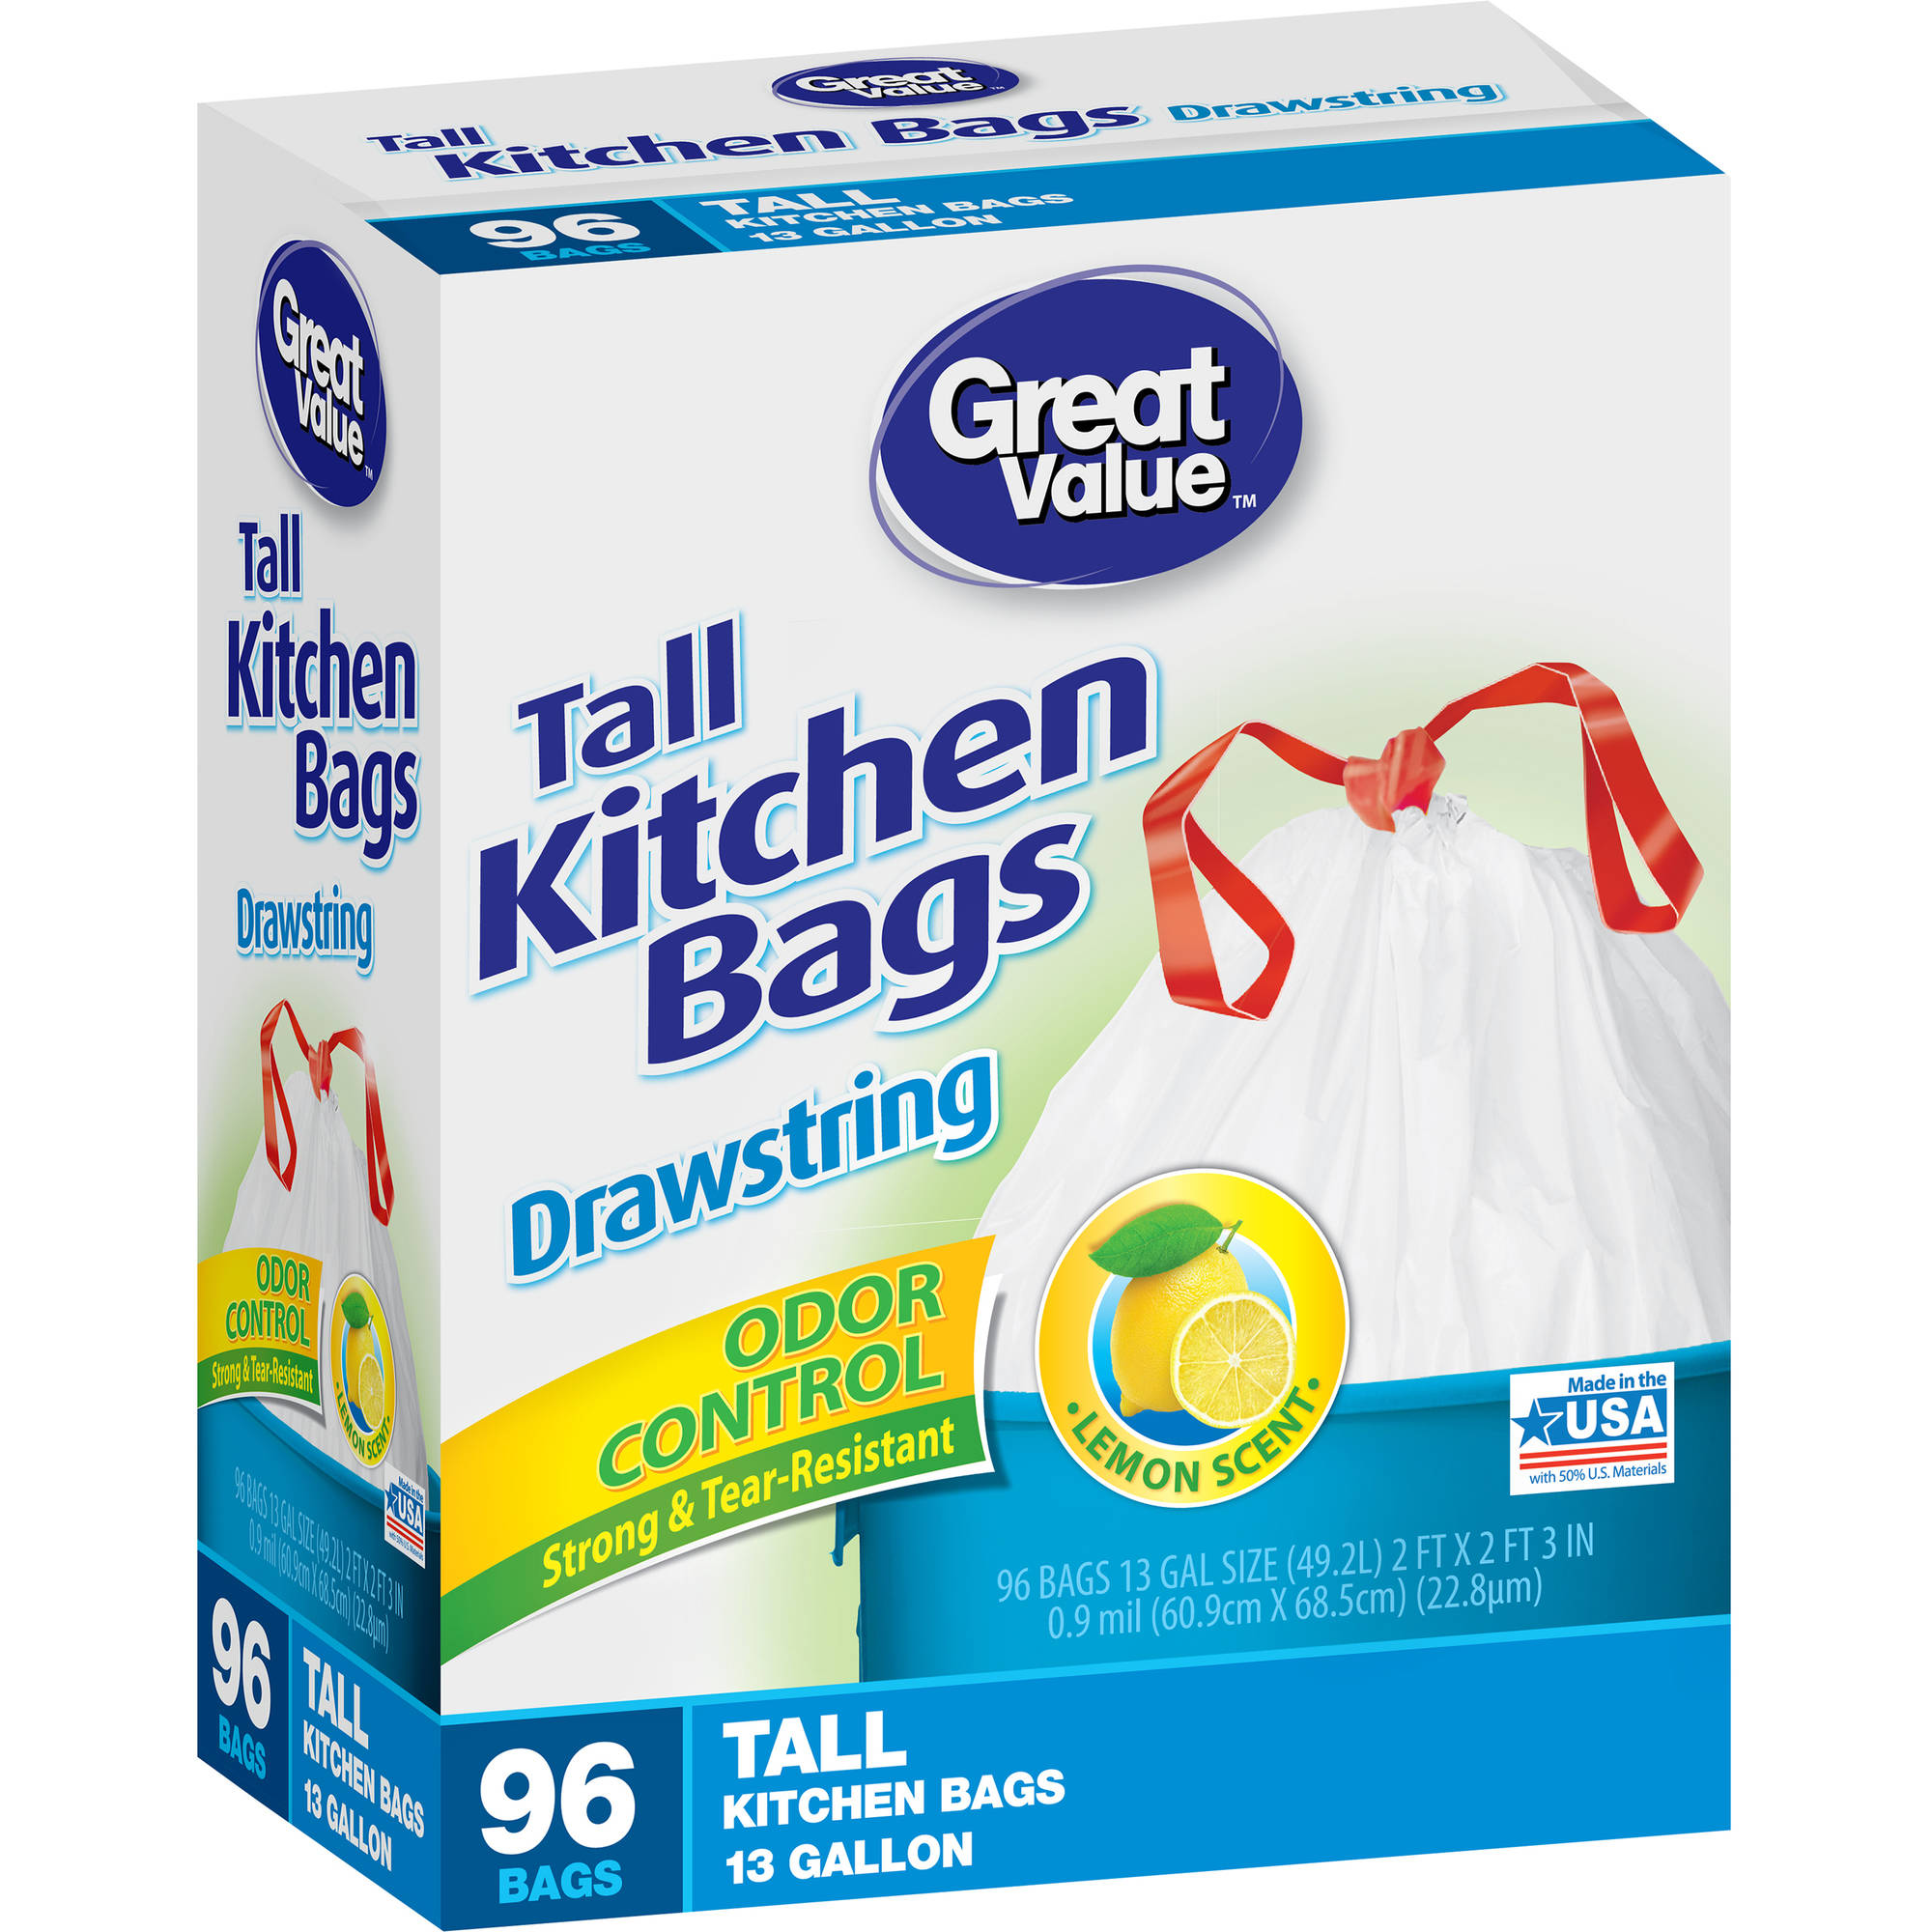 Great Value Drawstring Odor Control Lemon Scent Tall Kitchen Trash Bags, 13 gal, 96 count